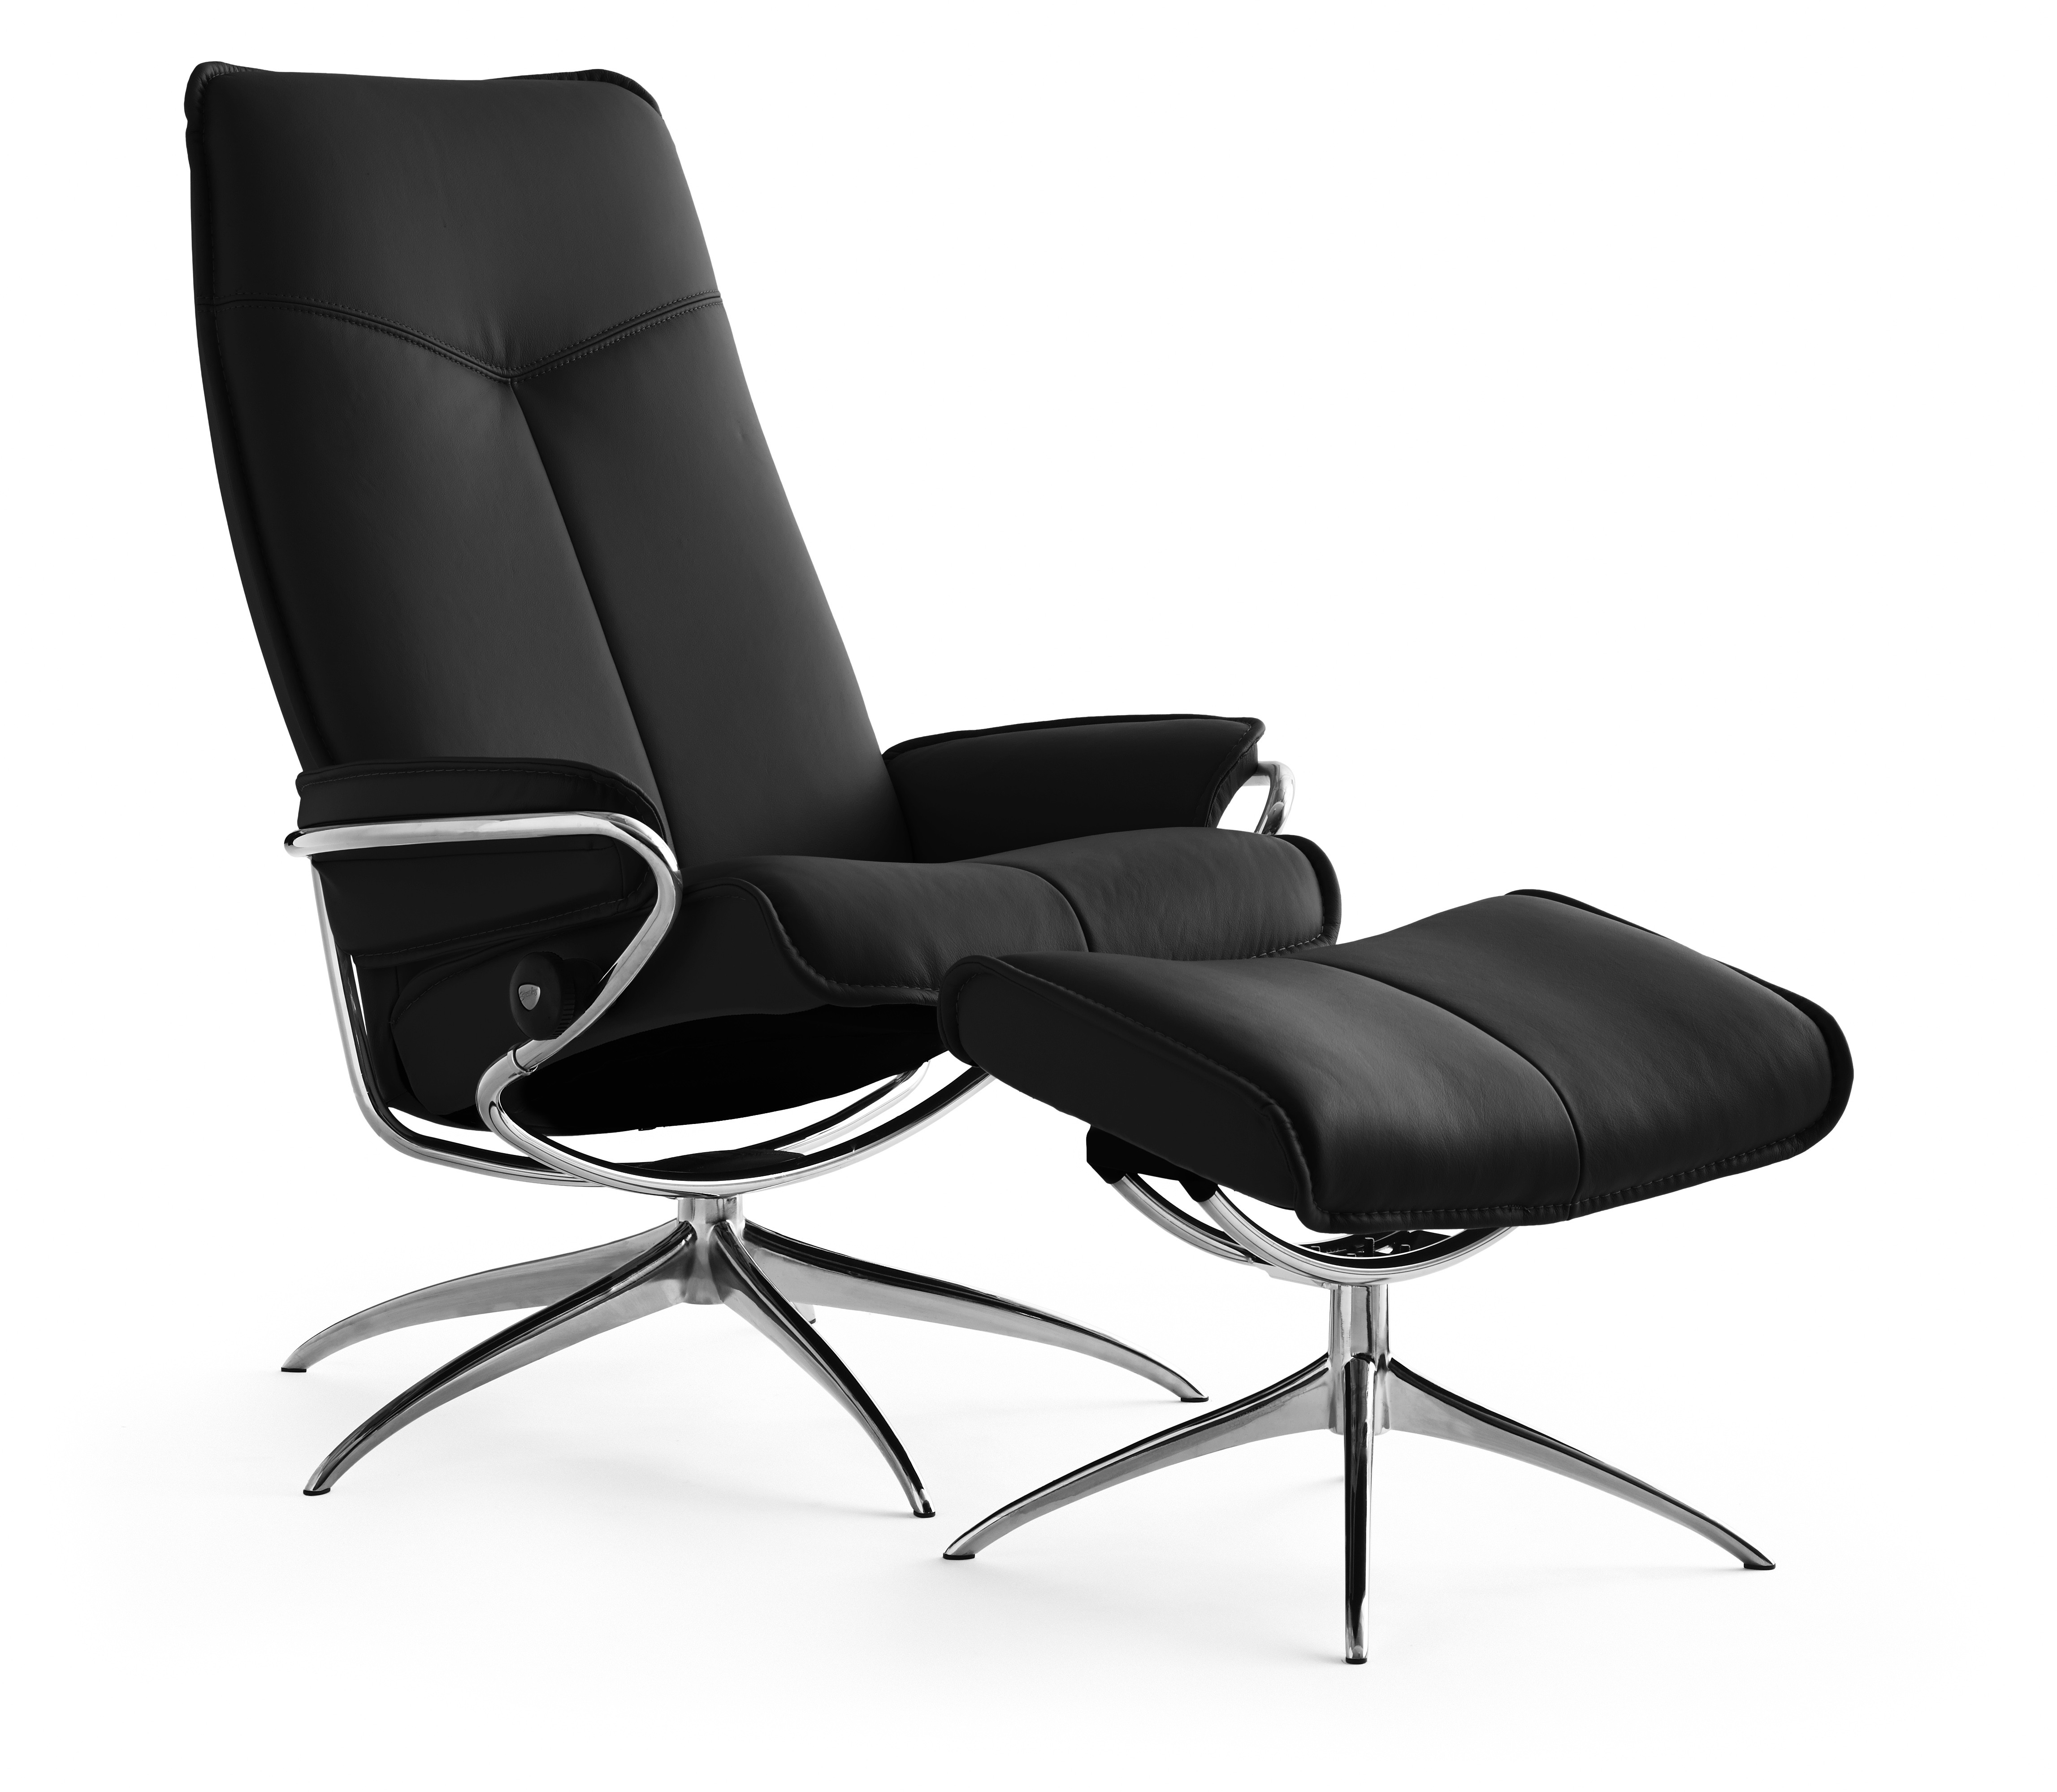 Stressless Chair Prices Ekornes Stressless City High Back Recliner With Ottoman